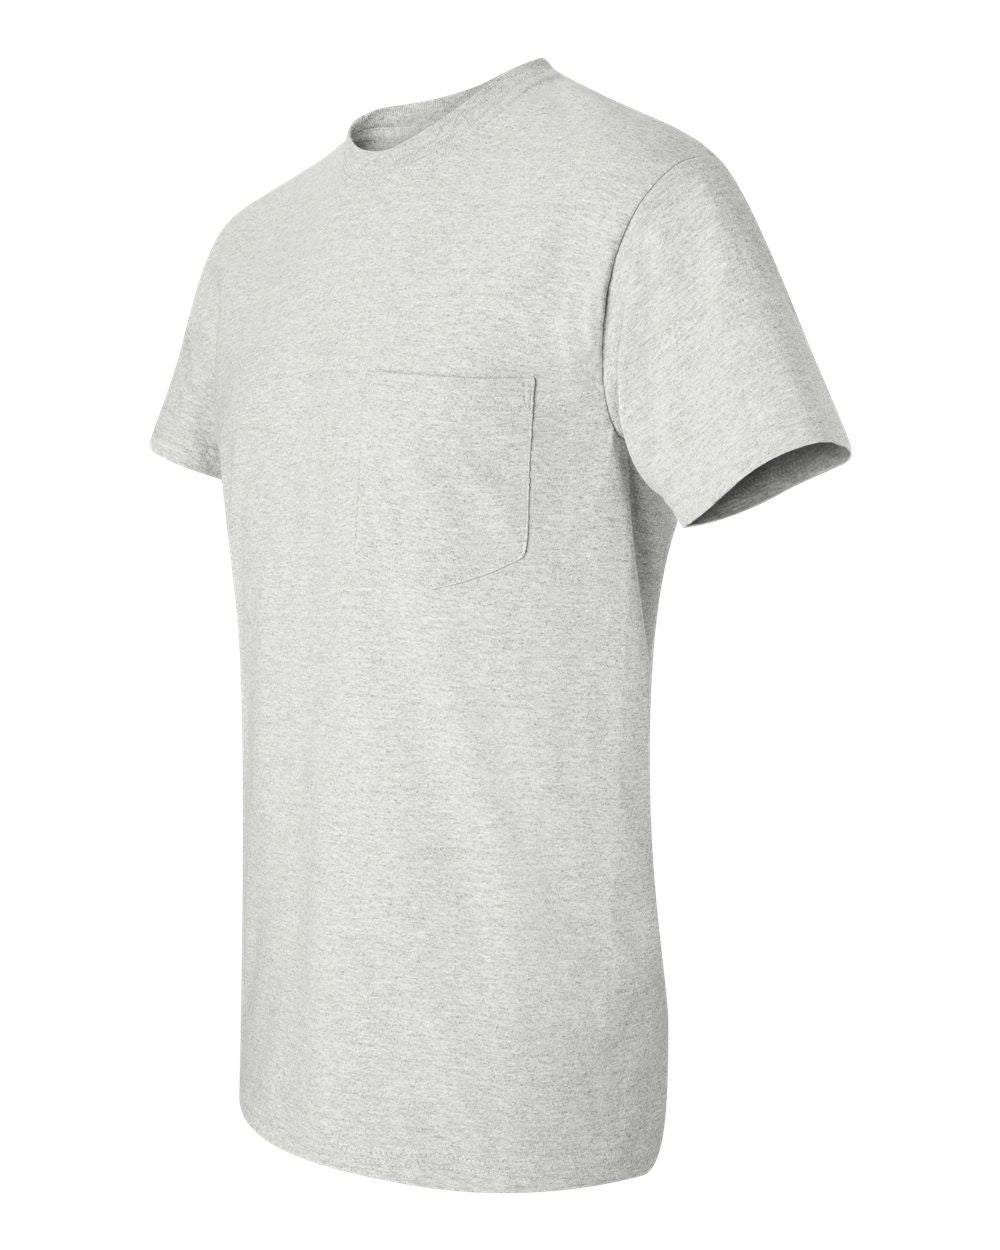 4 pack : Gildan Pocket T-shirts - Discountedrack.com